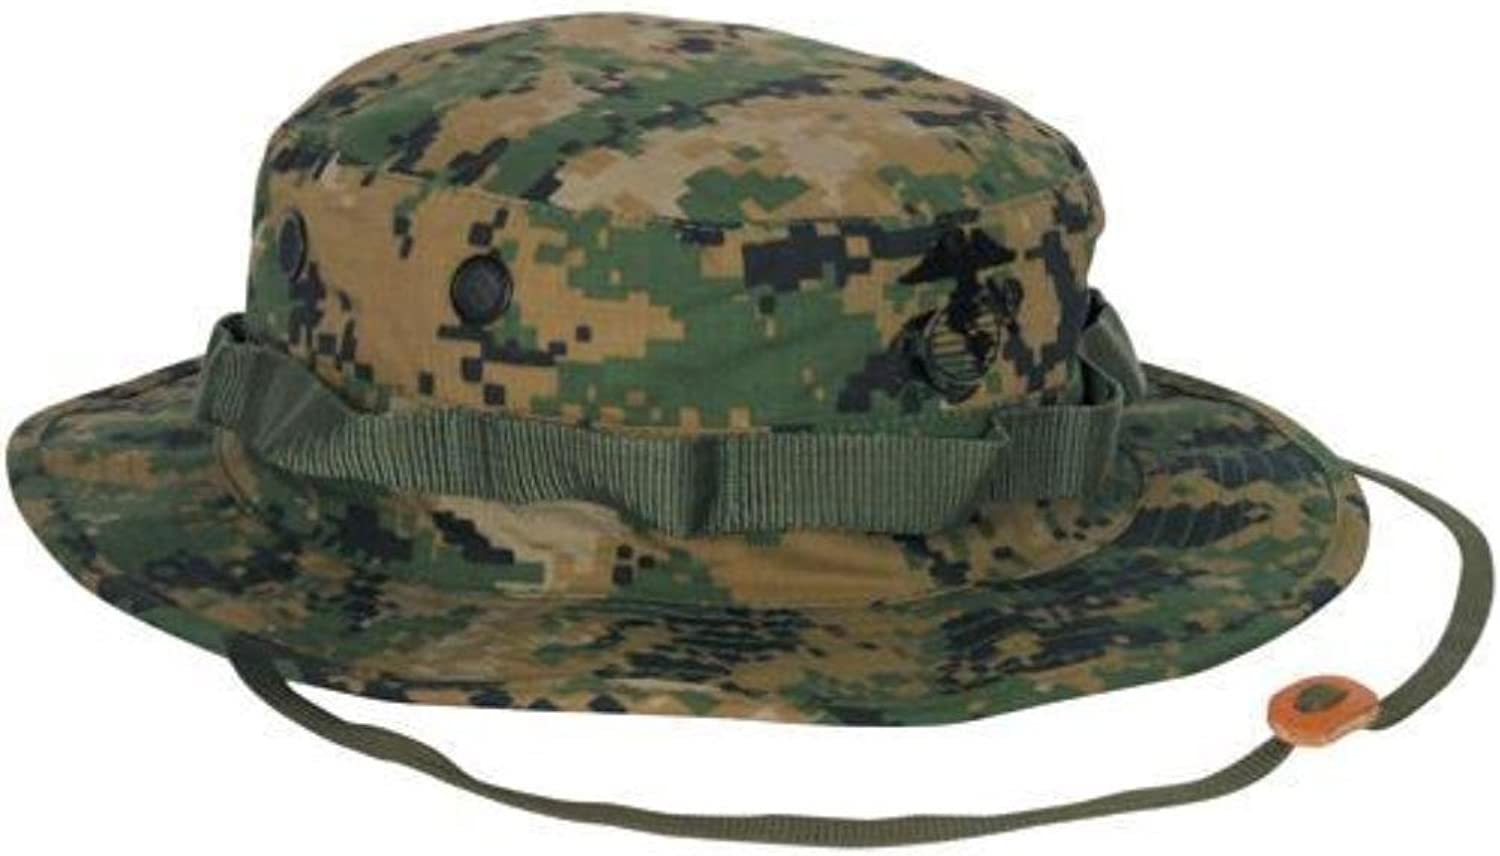 Genuine Issue US Military Boonie Hat, Made in USA